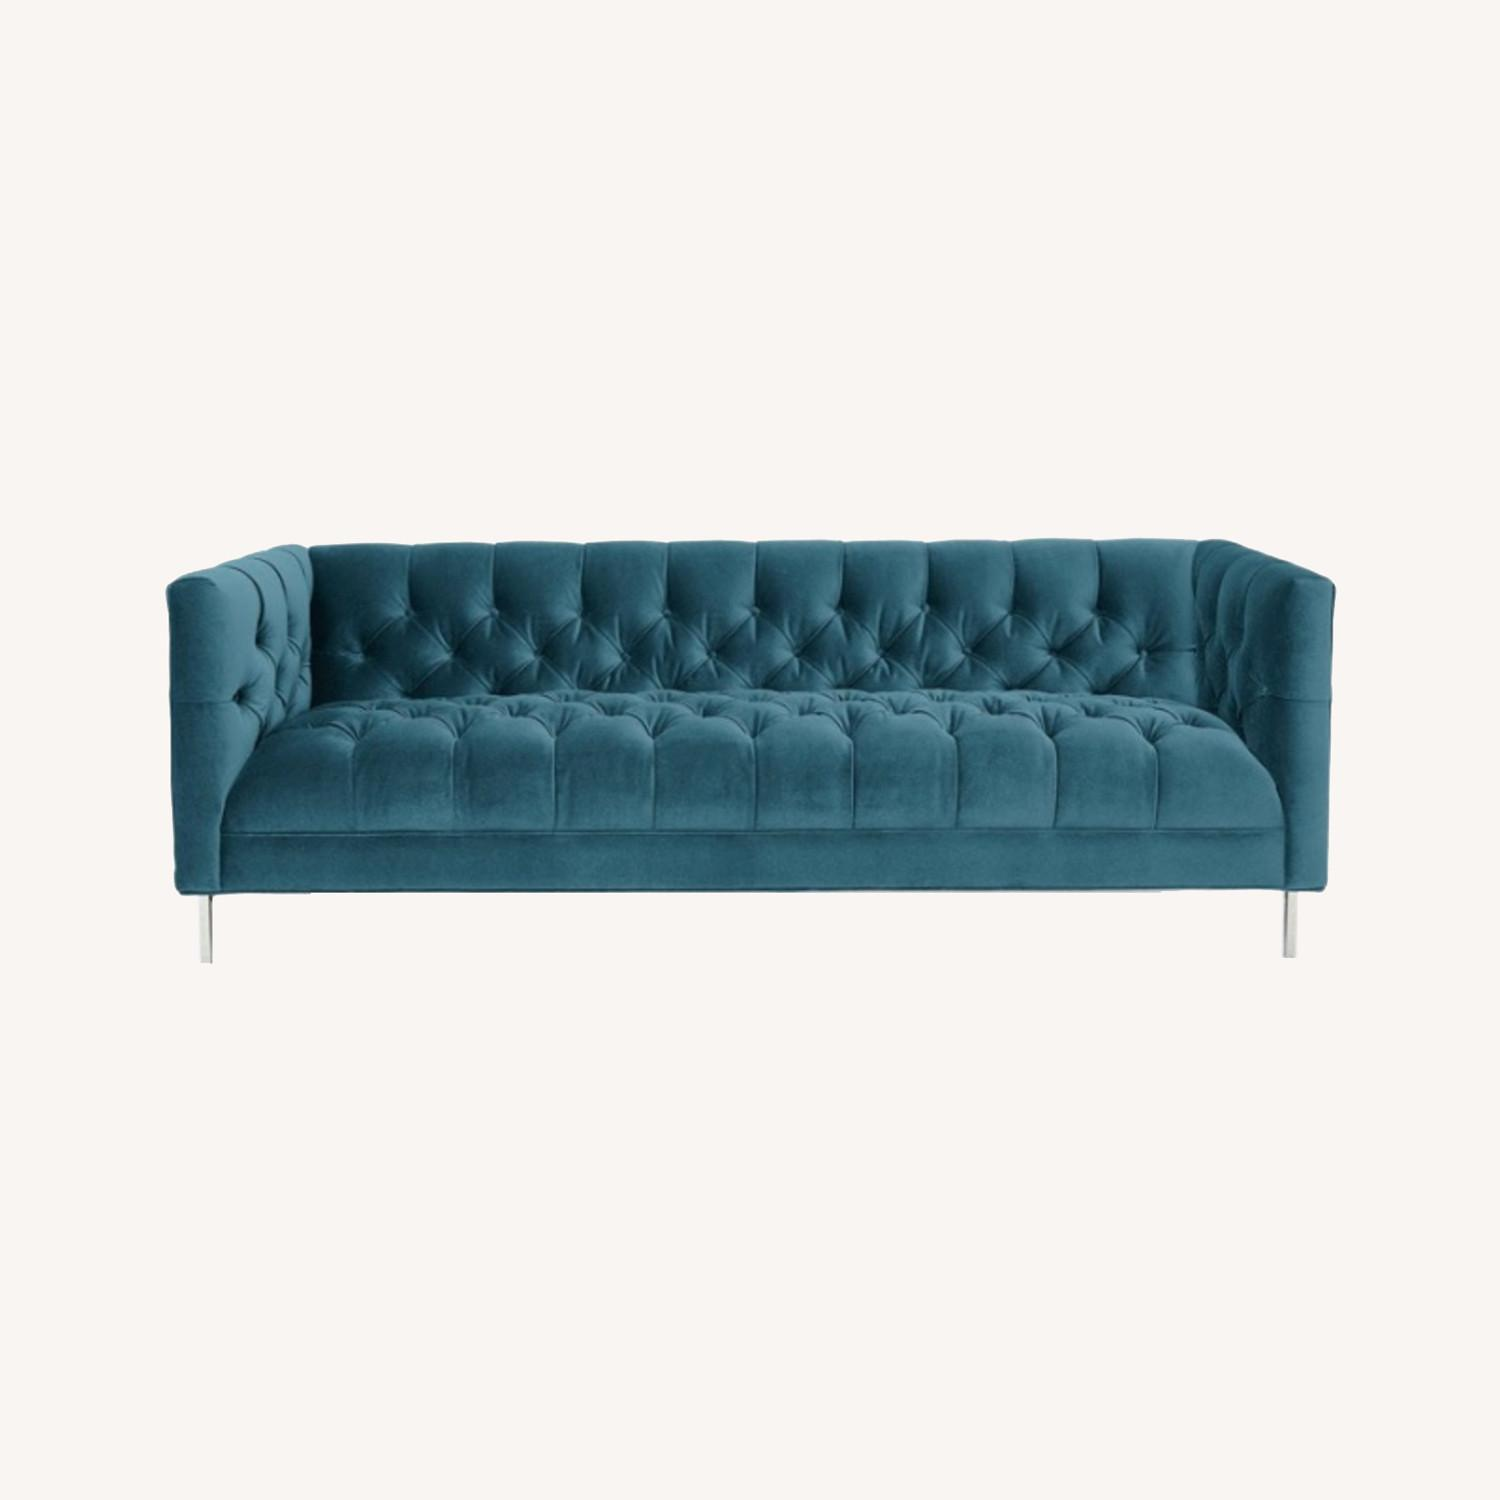 "ABC Tribeca 84"" Sofa (Cornflower Blue) - image-0"